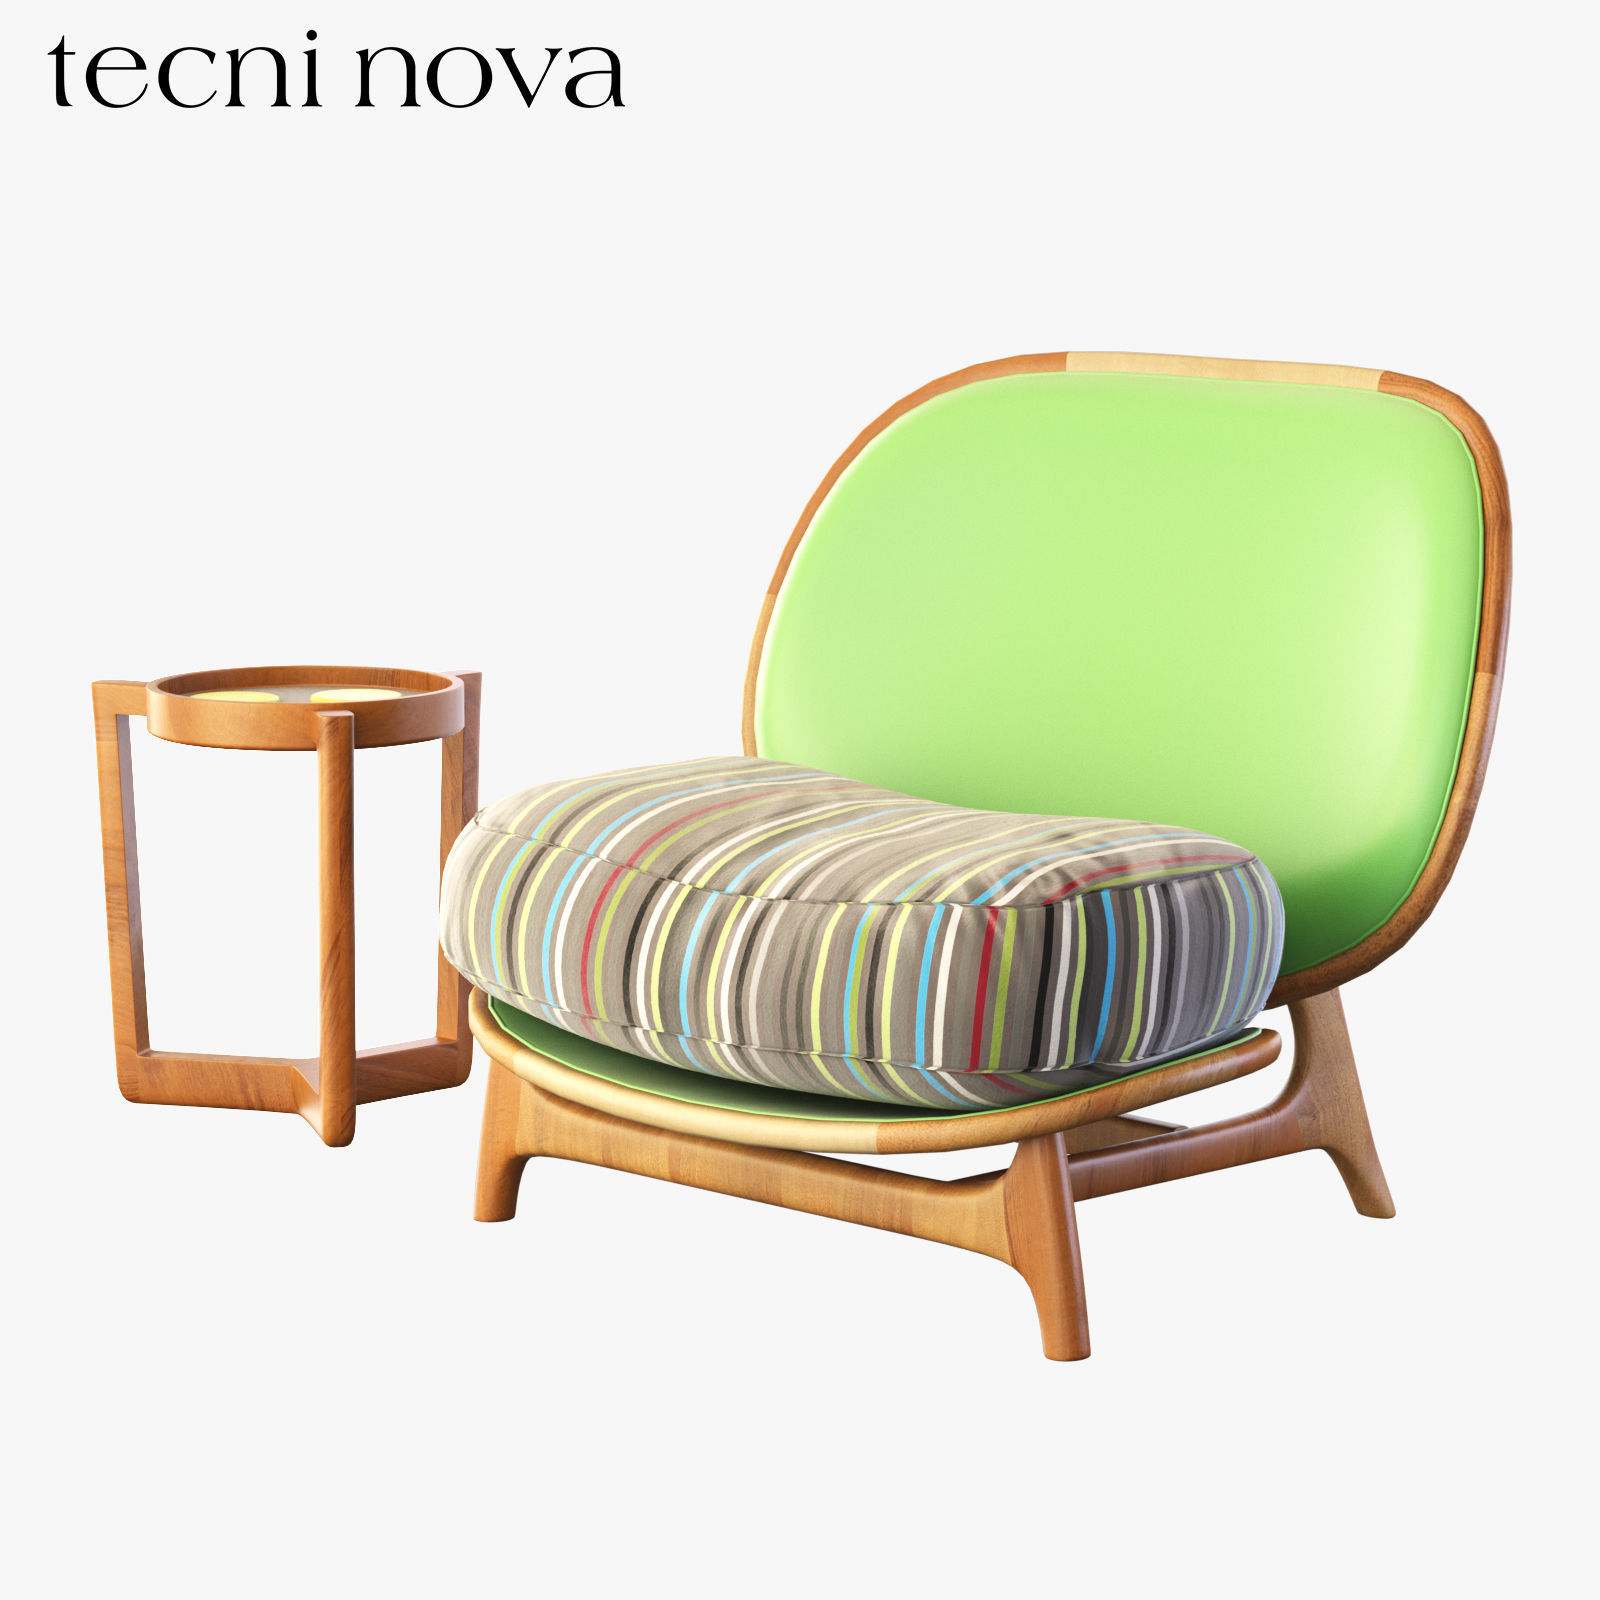 Armchair Outdoor Green Tecni Nova 3d Model Max Obj Fbx Mtl ...